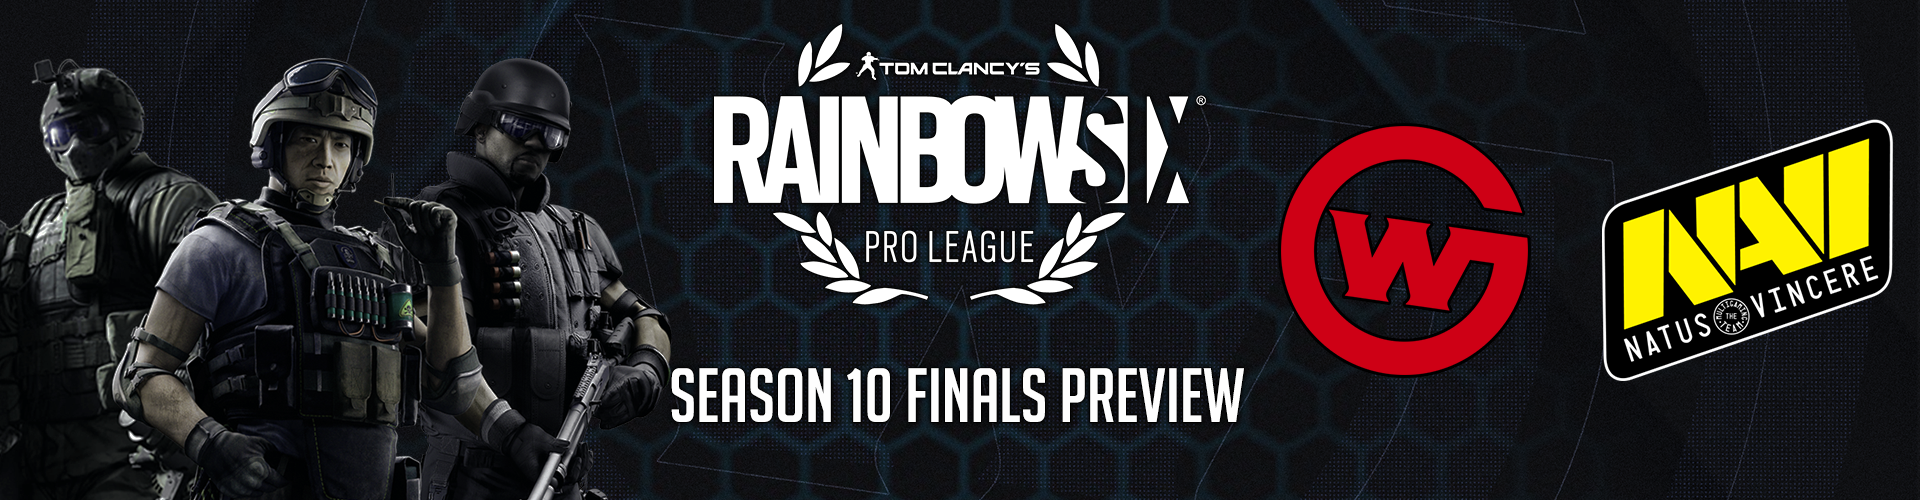 Rainbow Six Siege | Season 10 Finals Preview